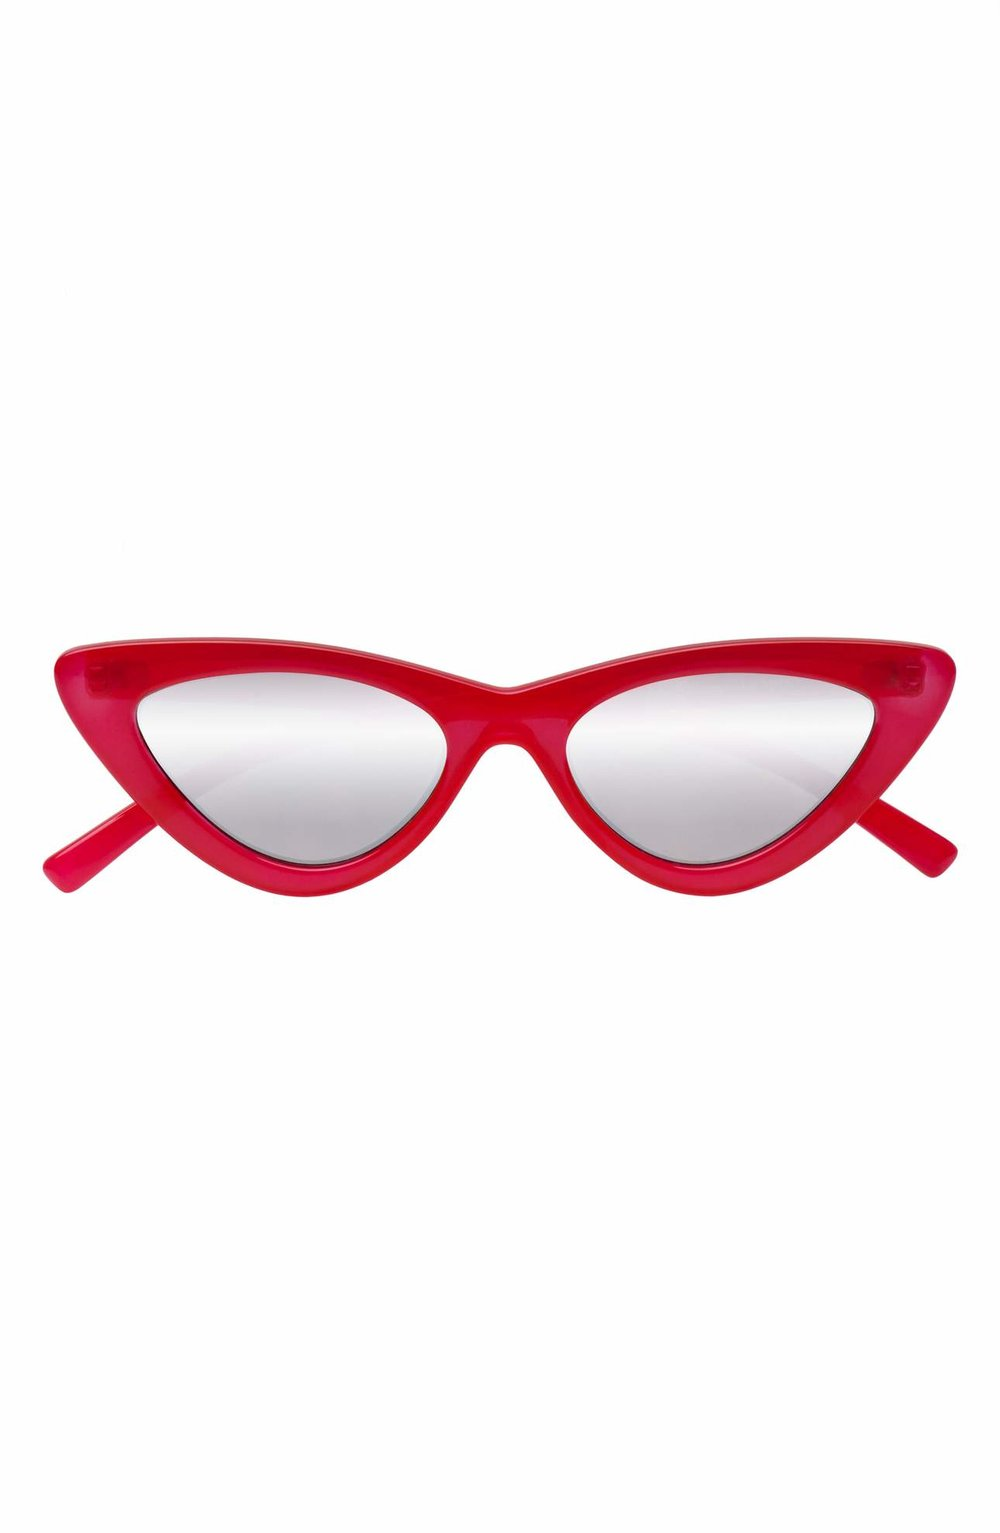 Adam Selman Red Cat Eye Sunglasses.jpg